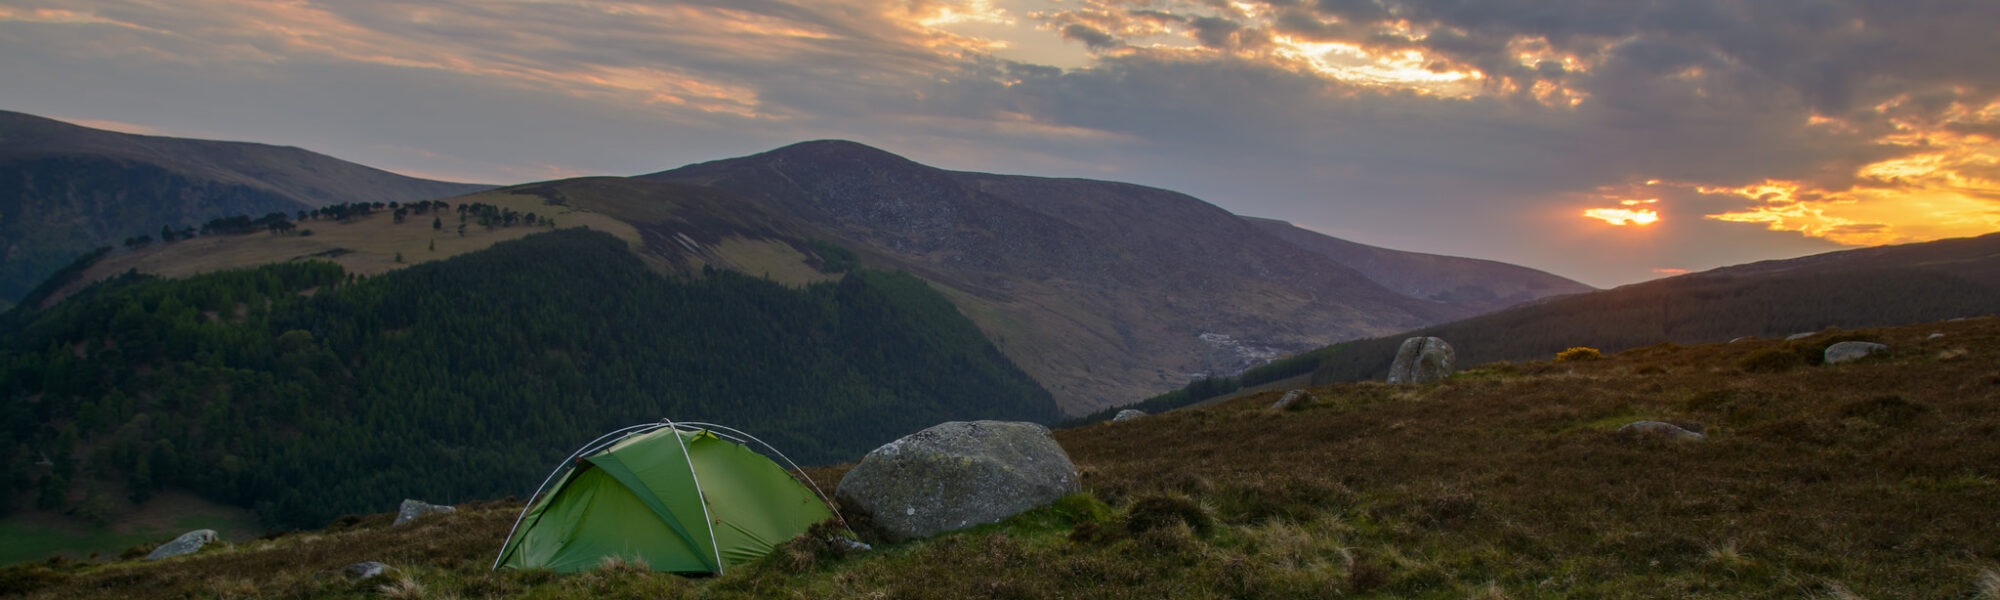 A tent in the middle of Wicklow Mountains National Park - Leon Dolman - cc